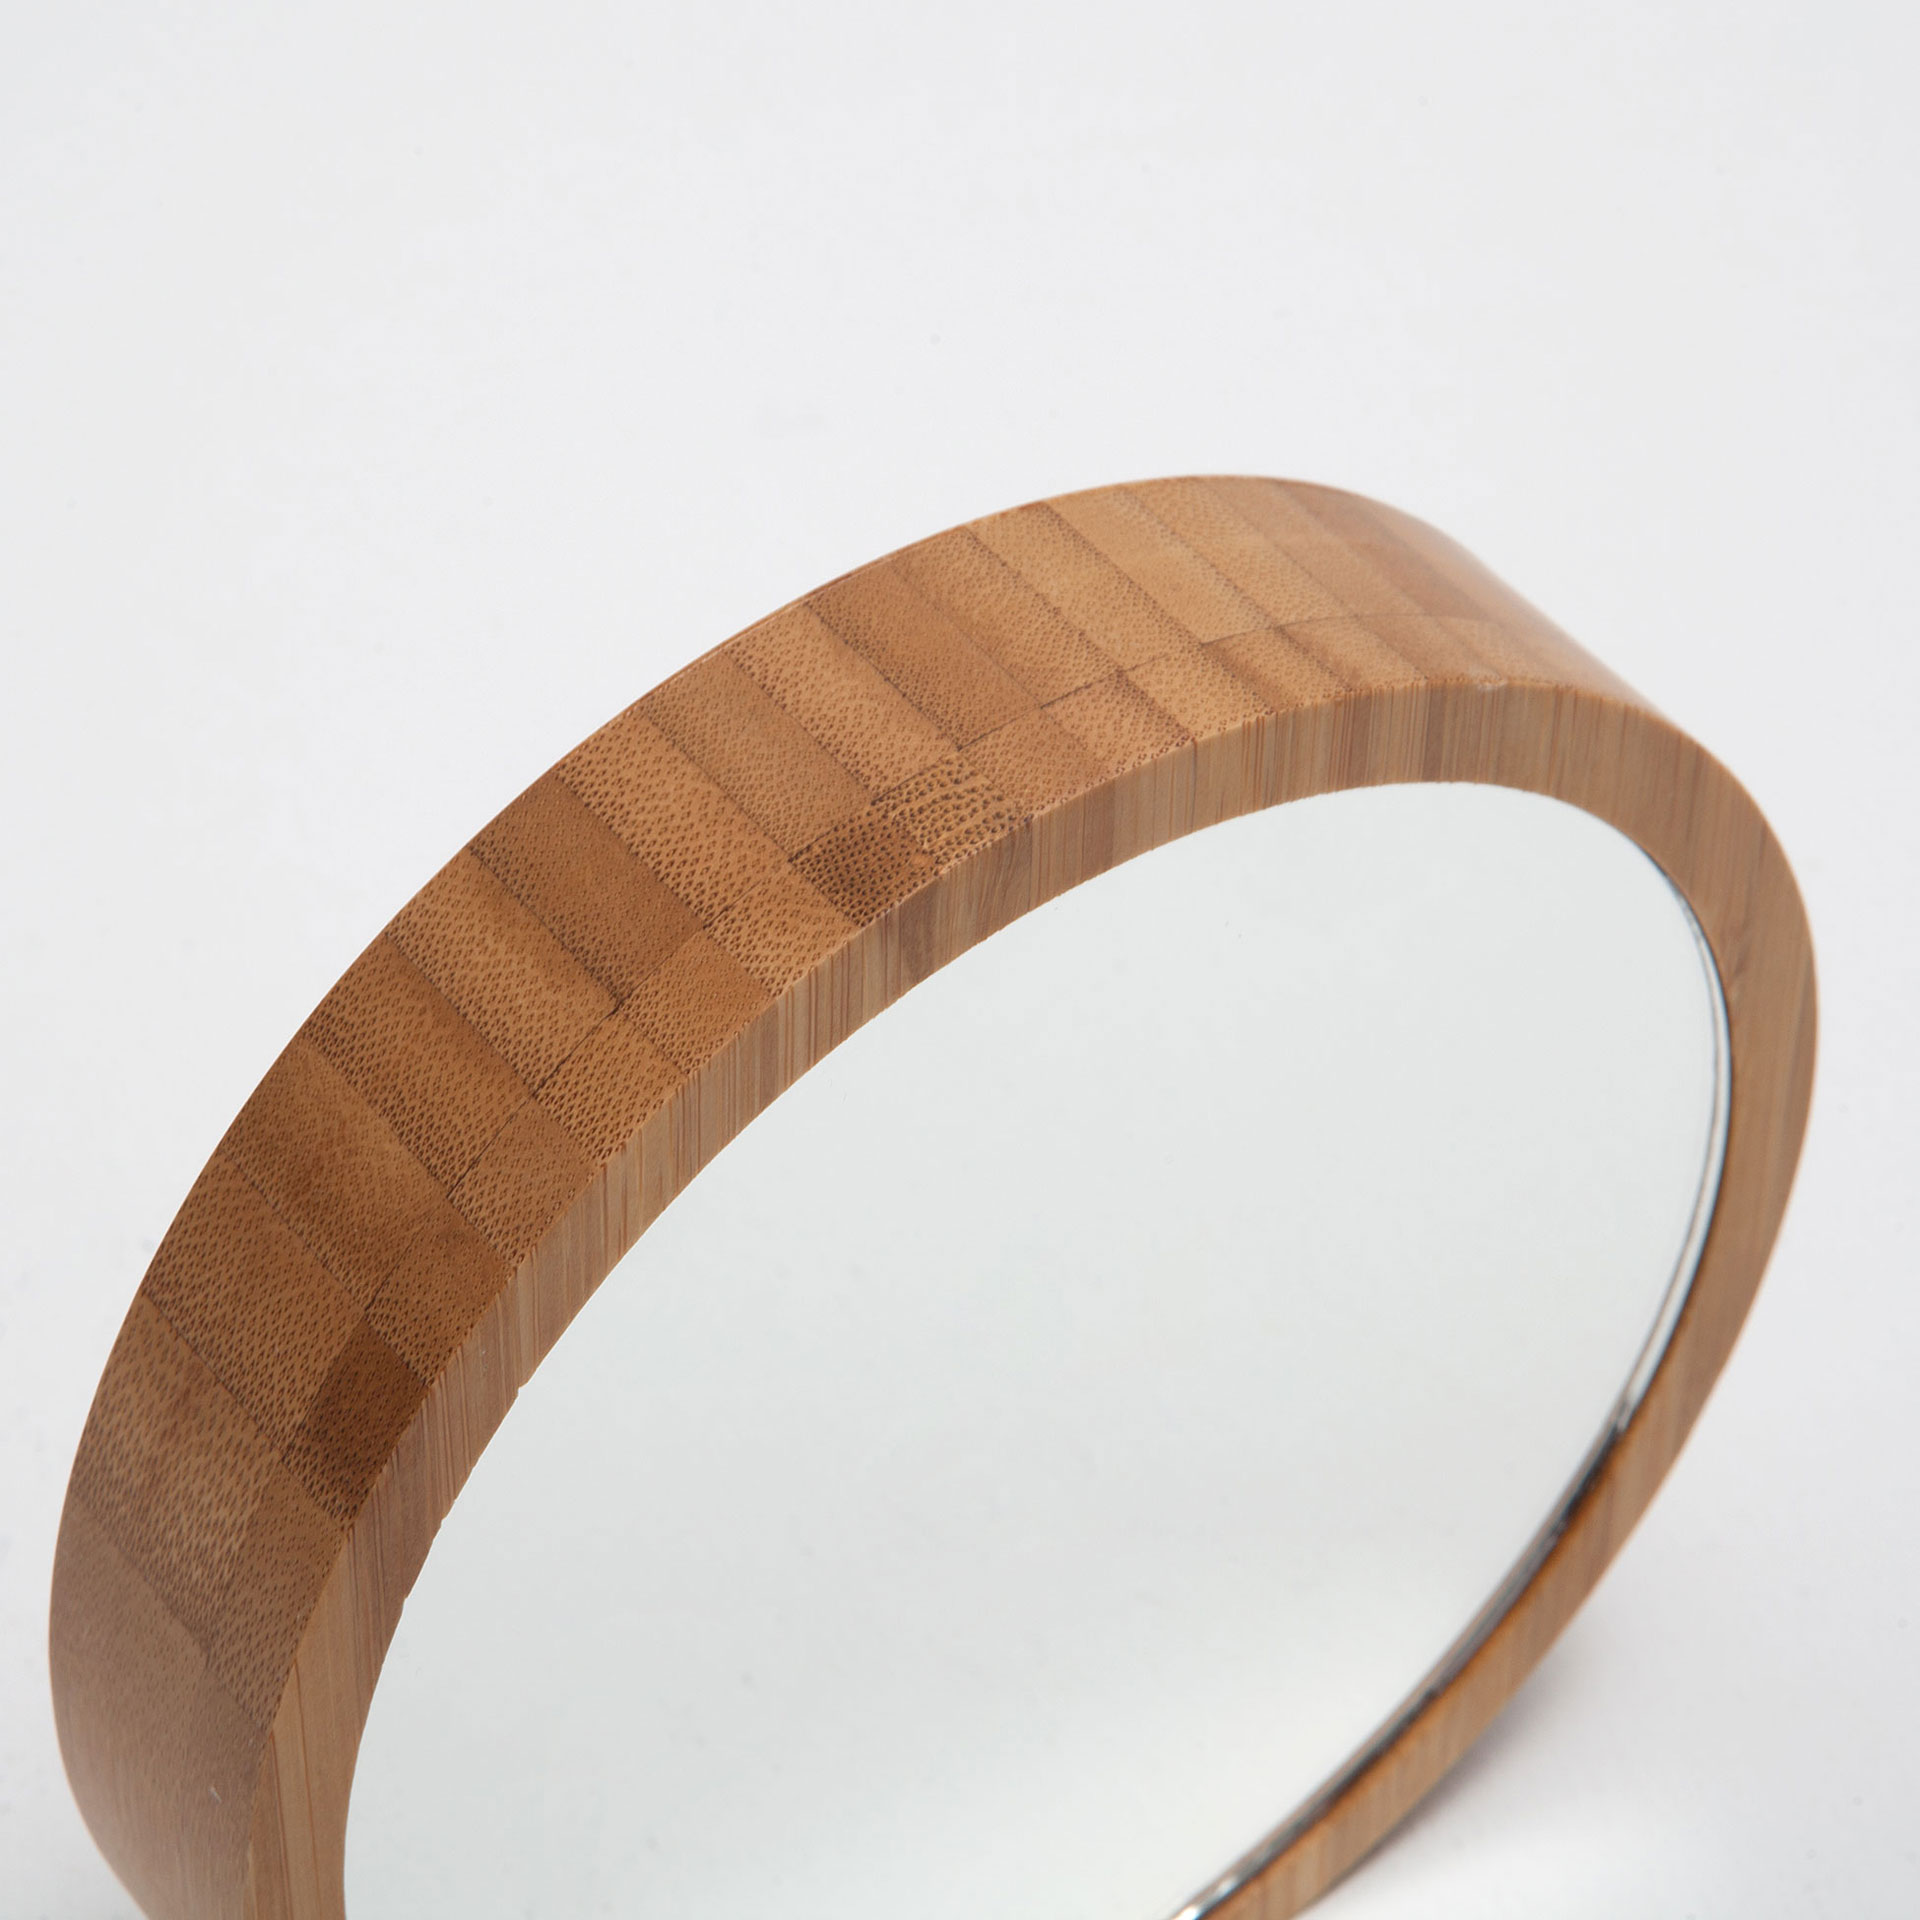 image 4 of the product round bamboo frame mirror